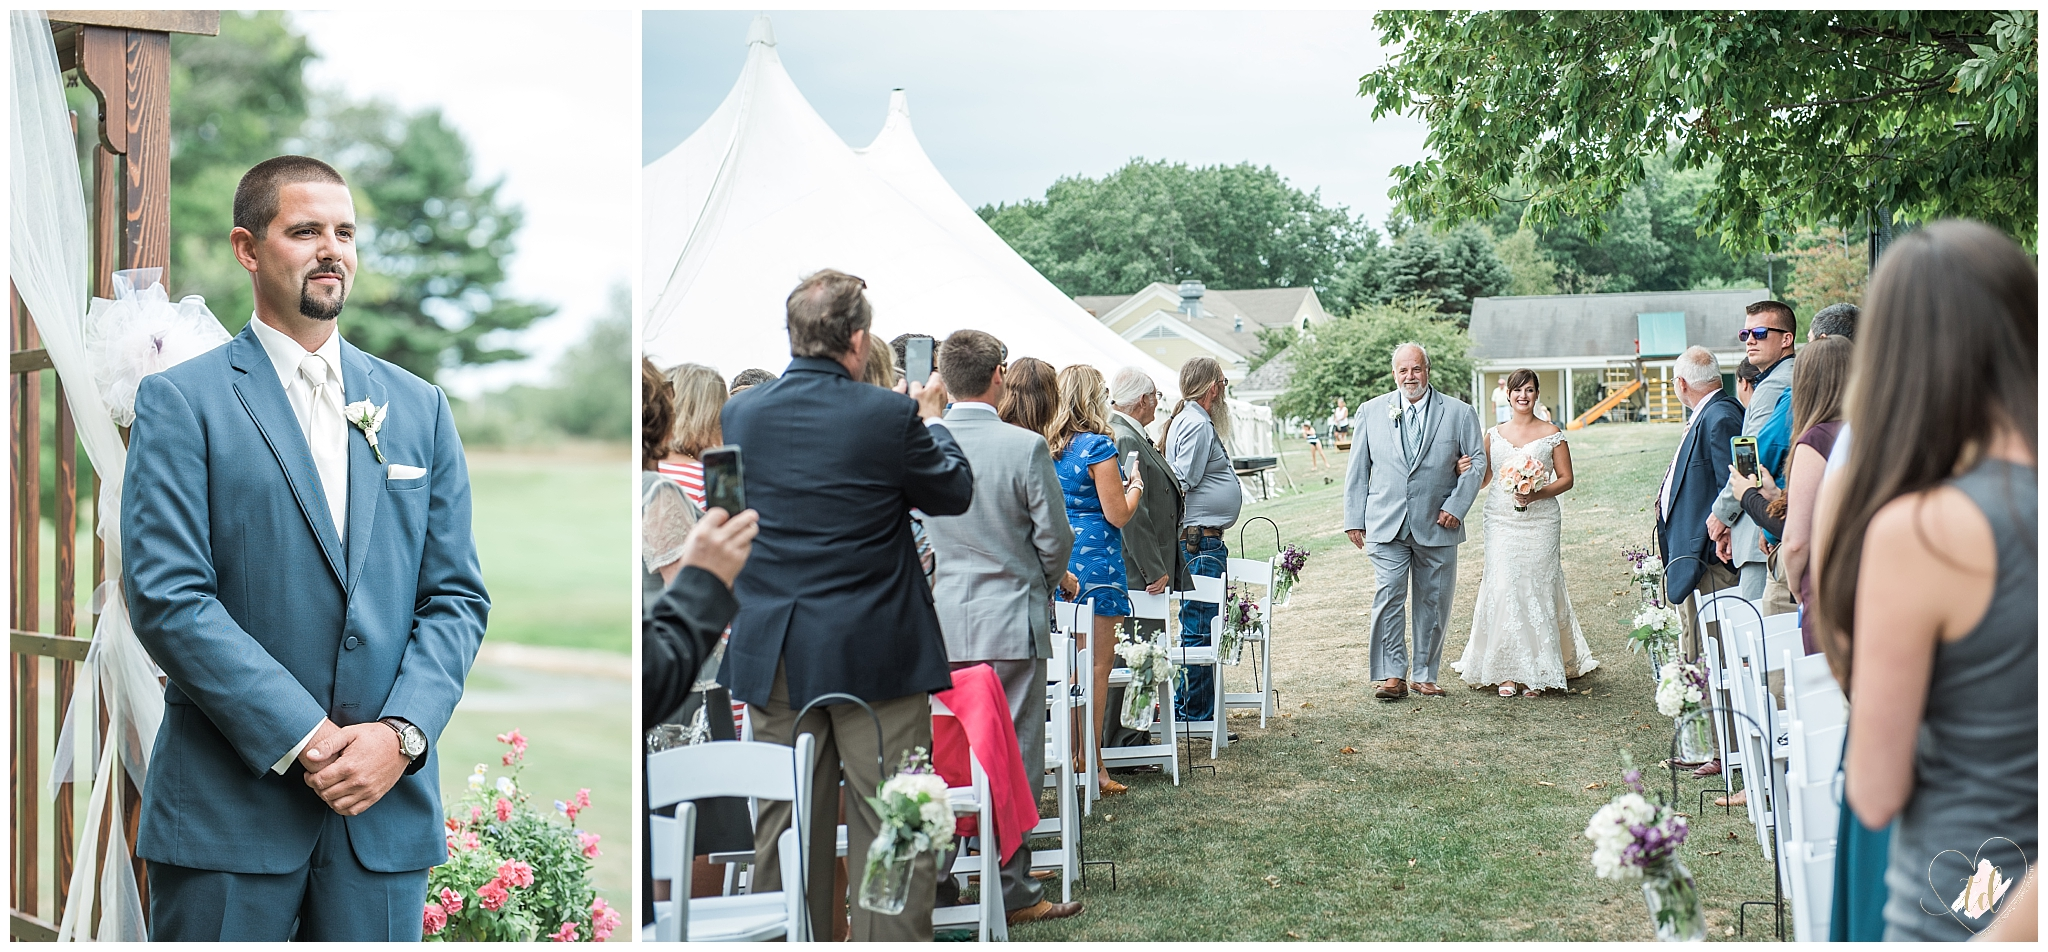 Groom watches bride walk down aisle with her father.